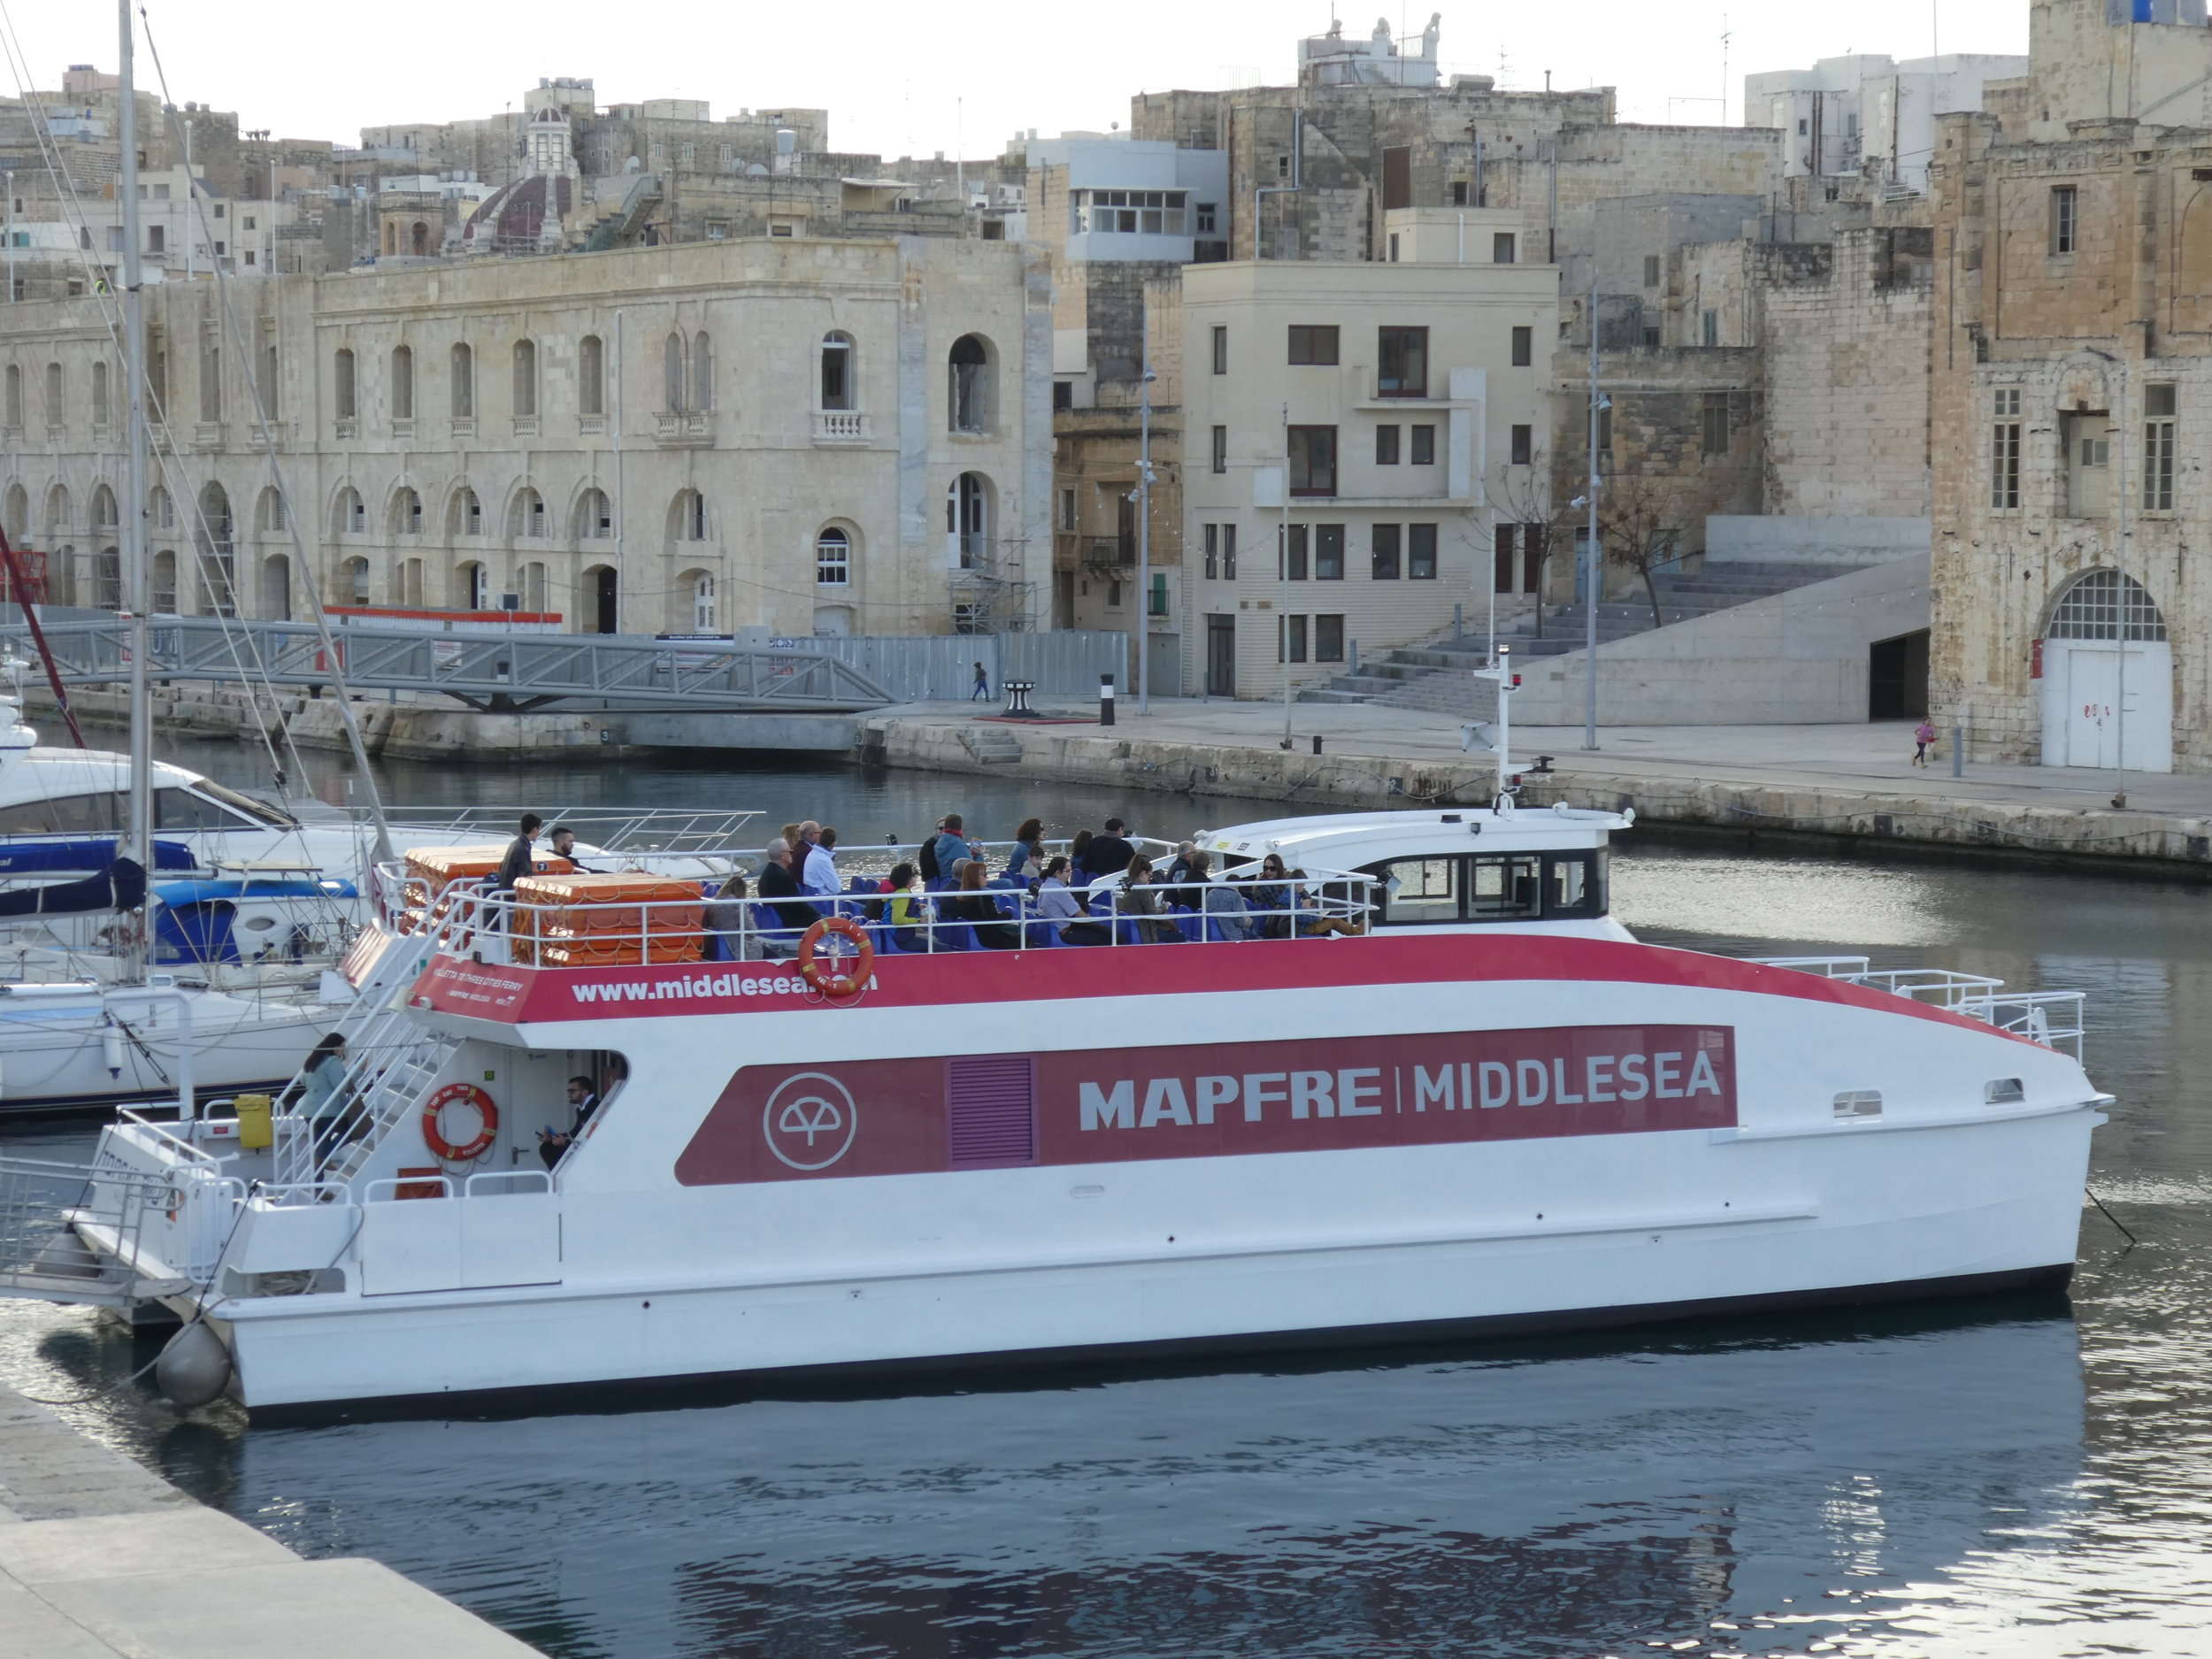 Less than 5 minutes more walk: The ferry between Cospicua (the Three Cities) and Valletta Waterfront leaves every full and half hour and takes 15 minutes to Valletta.